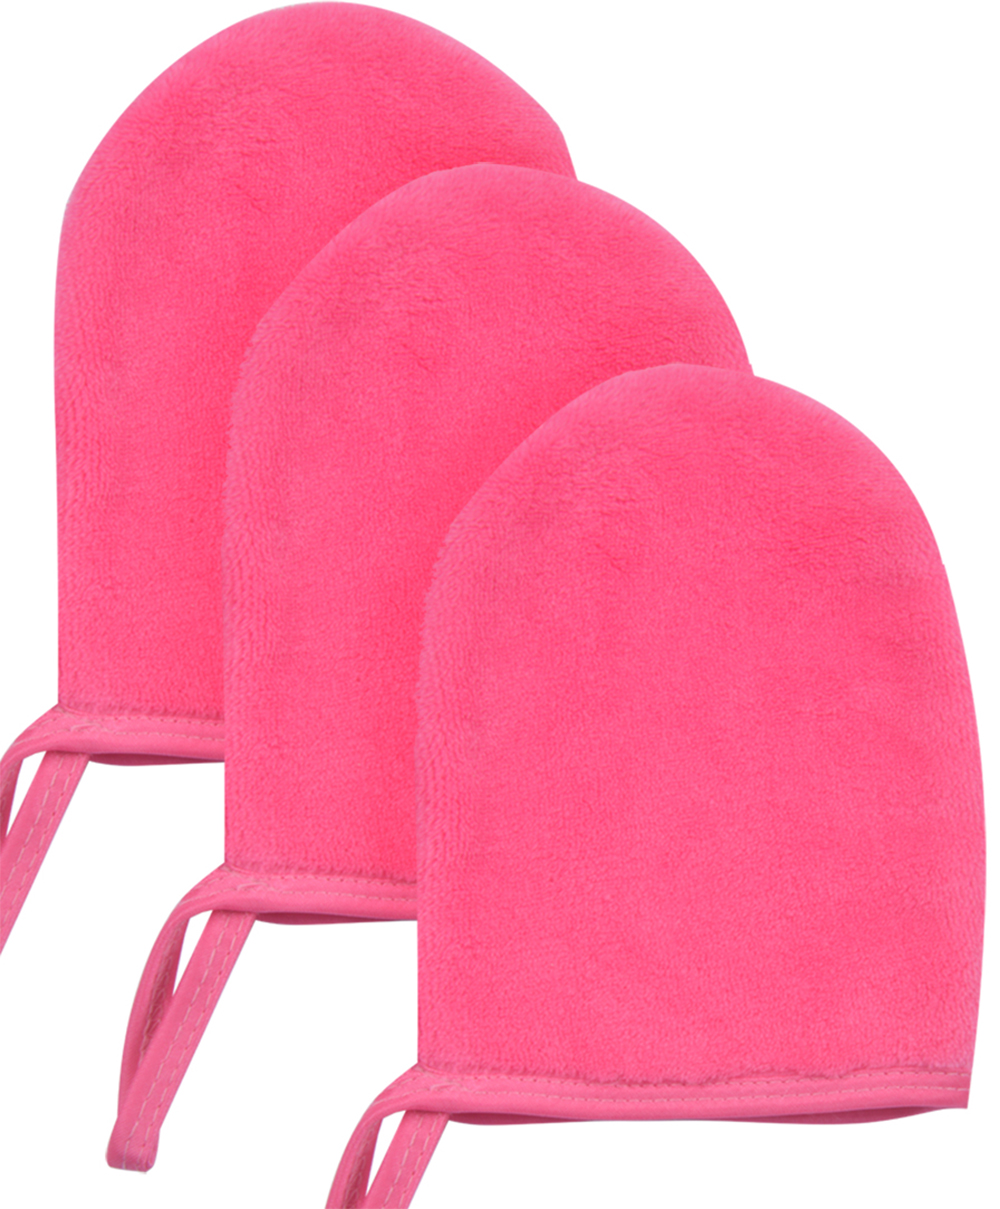 Sinland Microfiber Makeup Remover Gloves Face Cleansing Towel Cloths Spa Mitts Soft Washing Tool Pack of 3 6Inx5In Dark pink